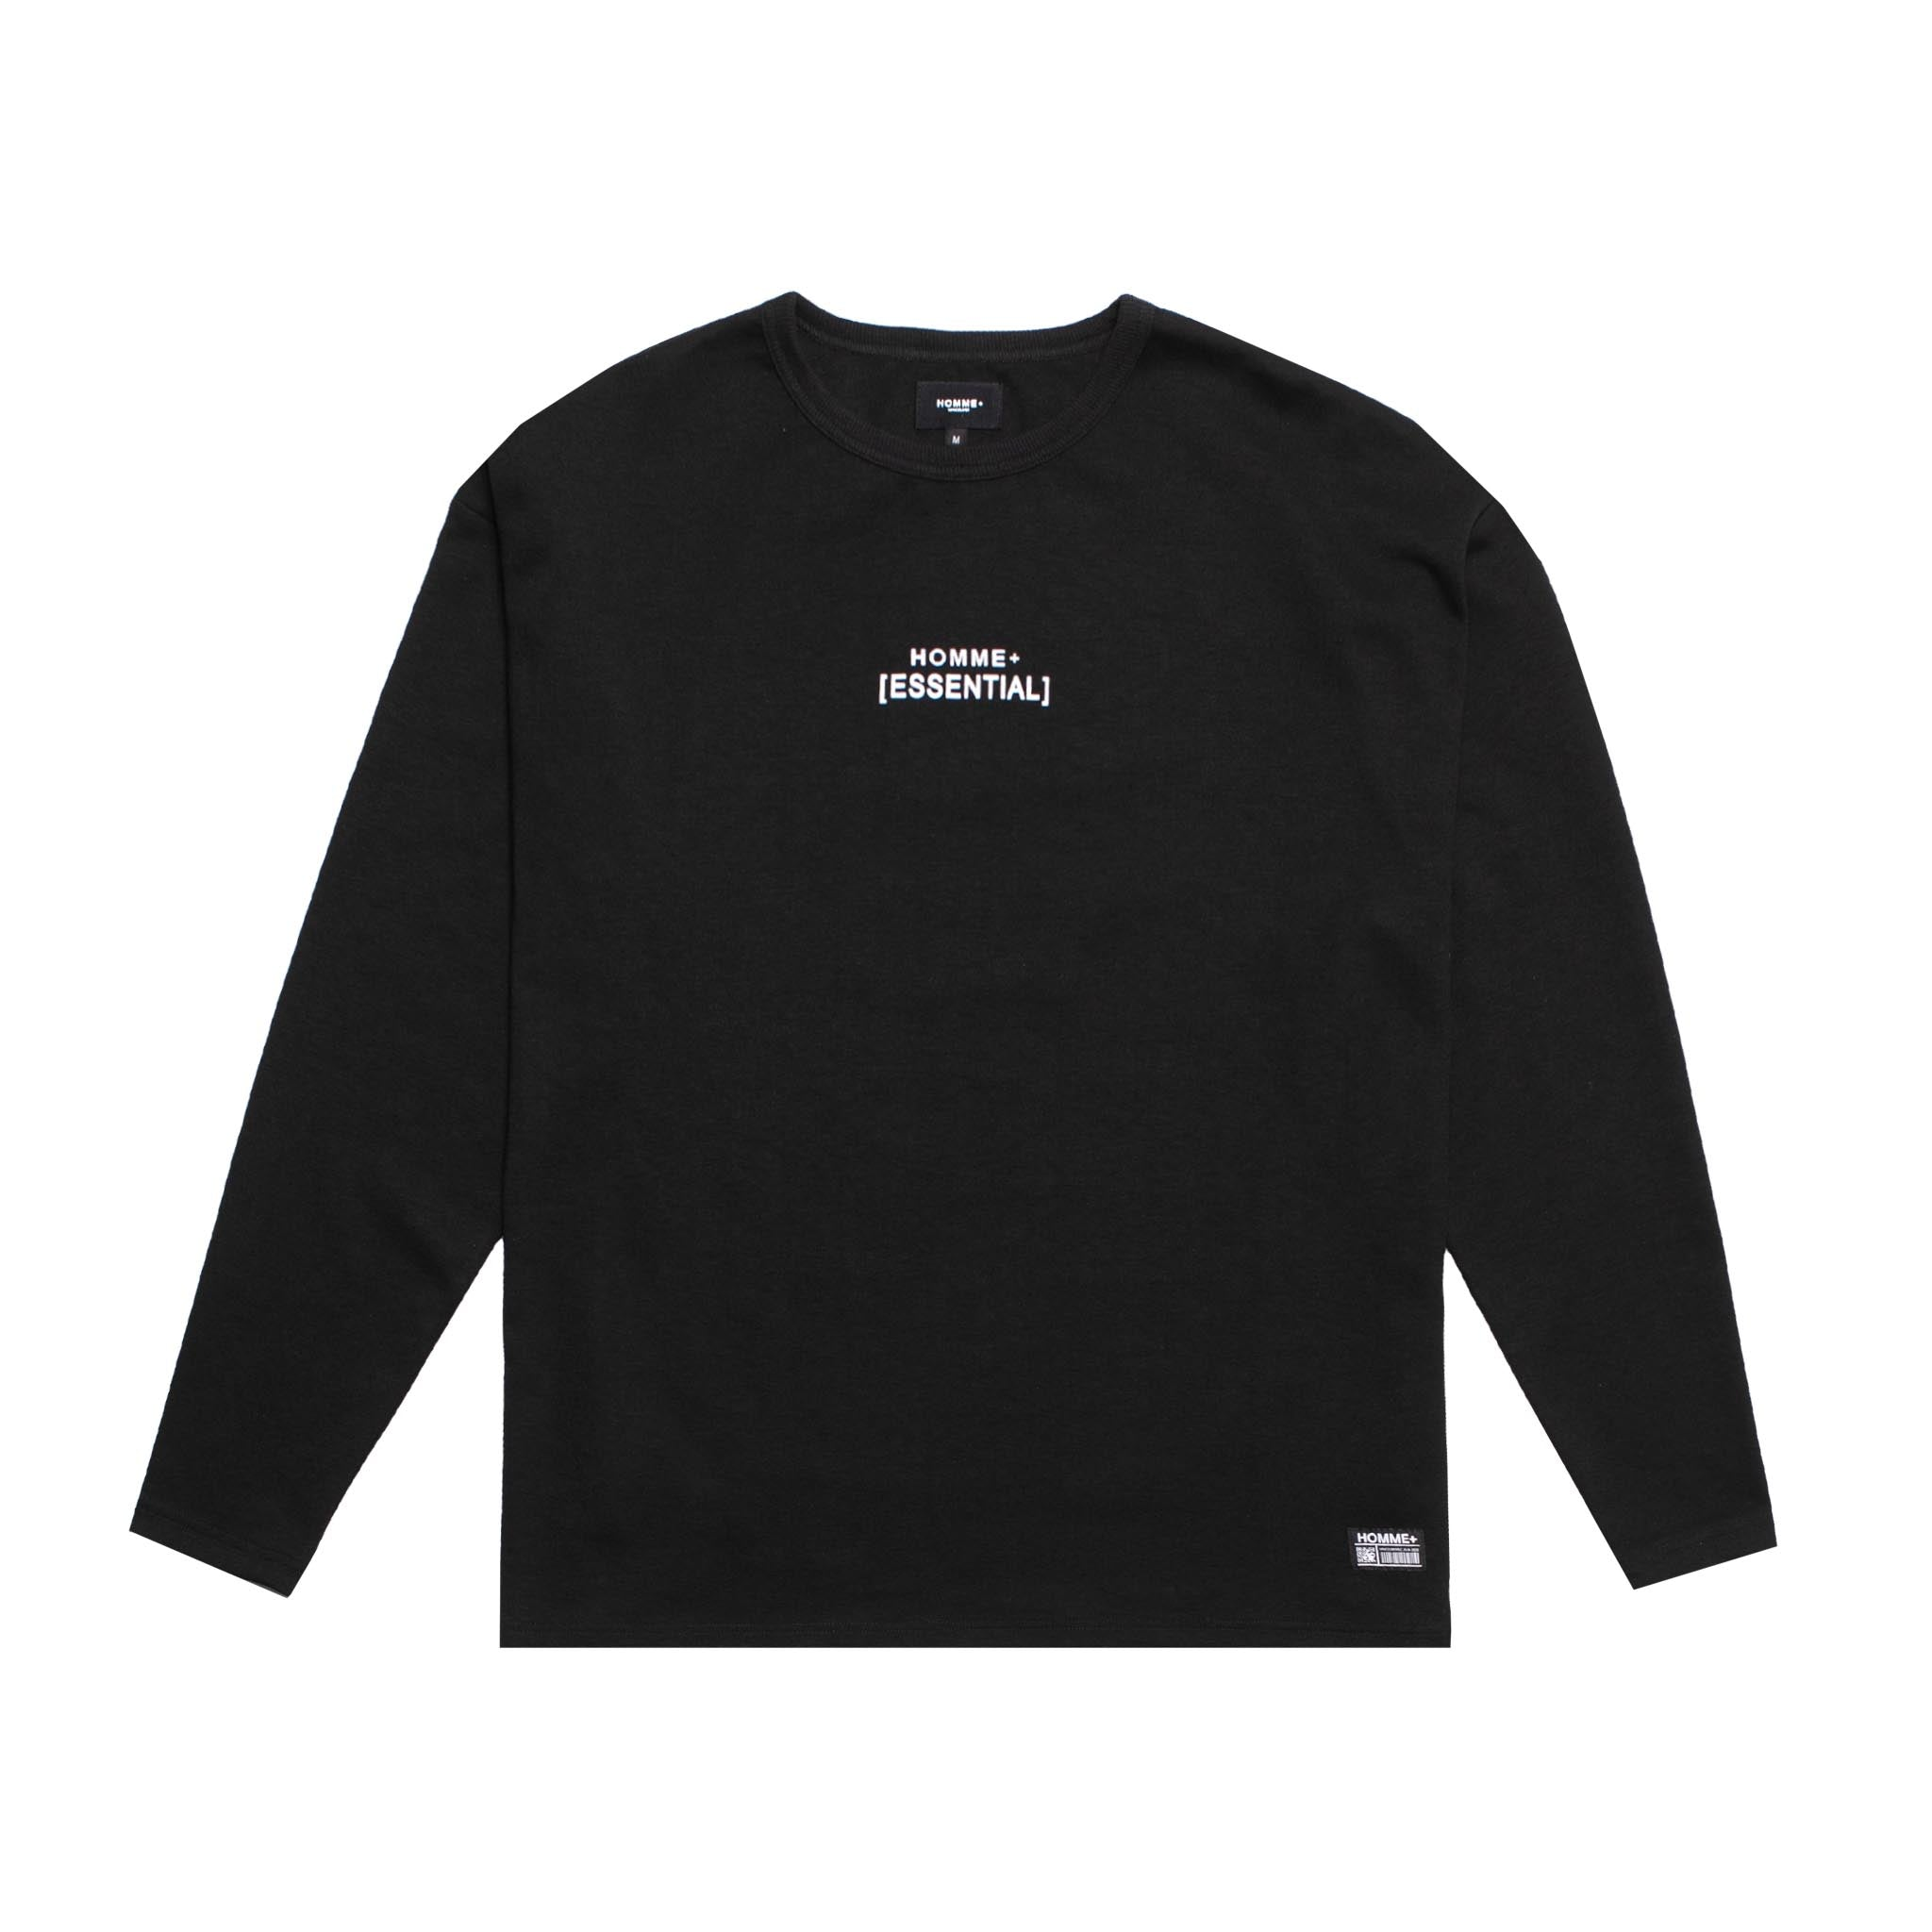 HOMME+ 'ESSENTIAL' Heavyweight L/S Tee Black